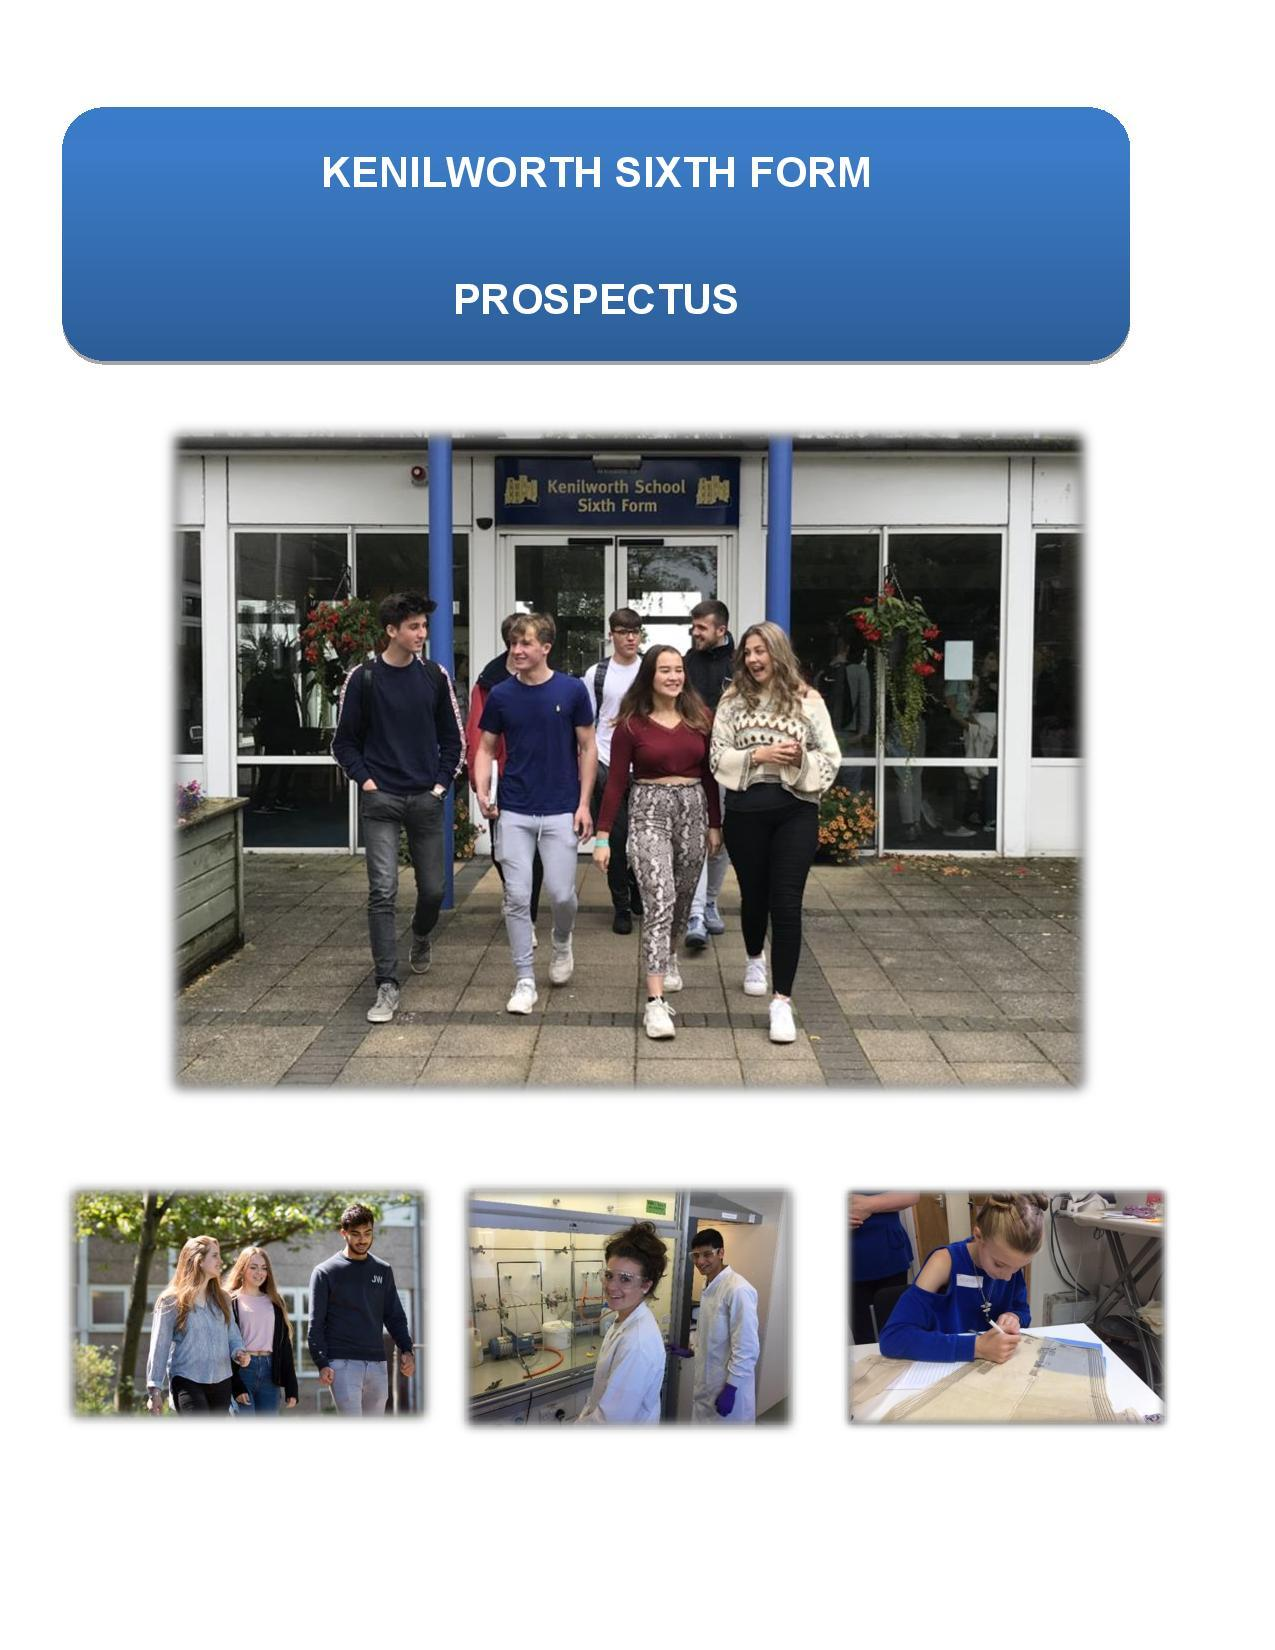 Prospectus front cover image